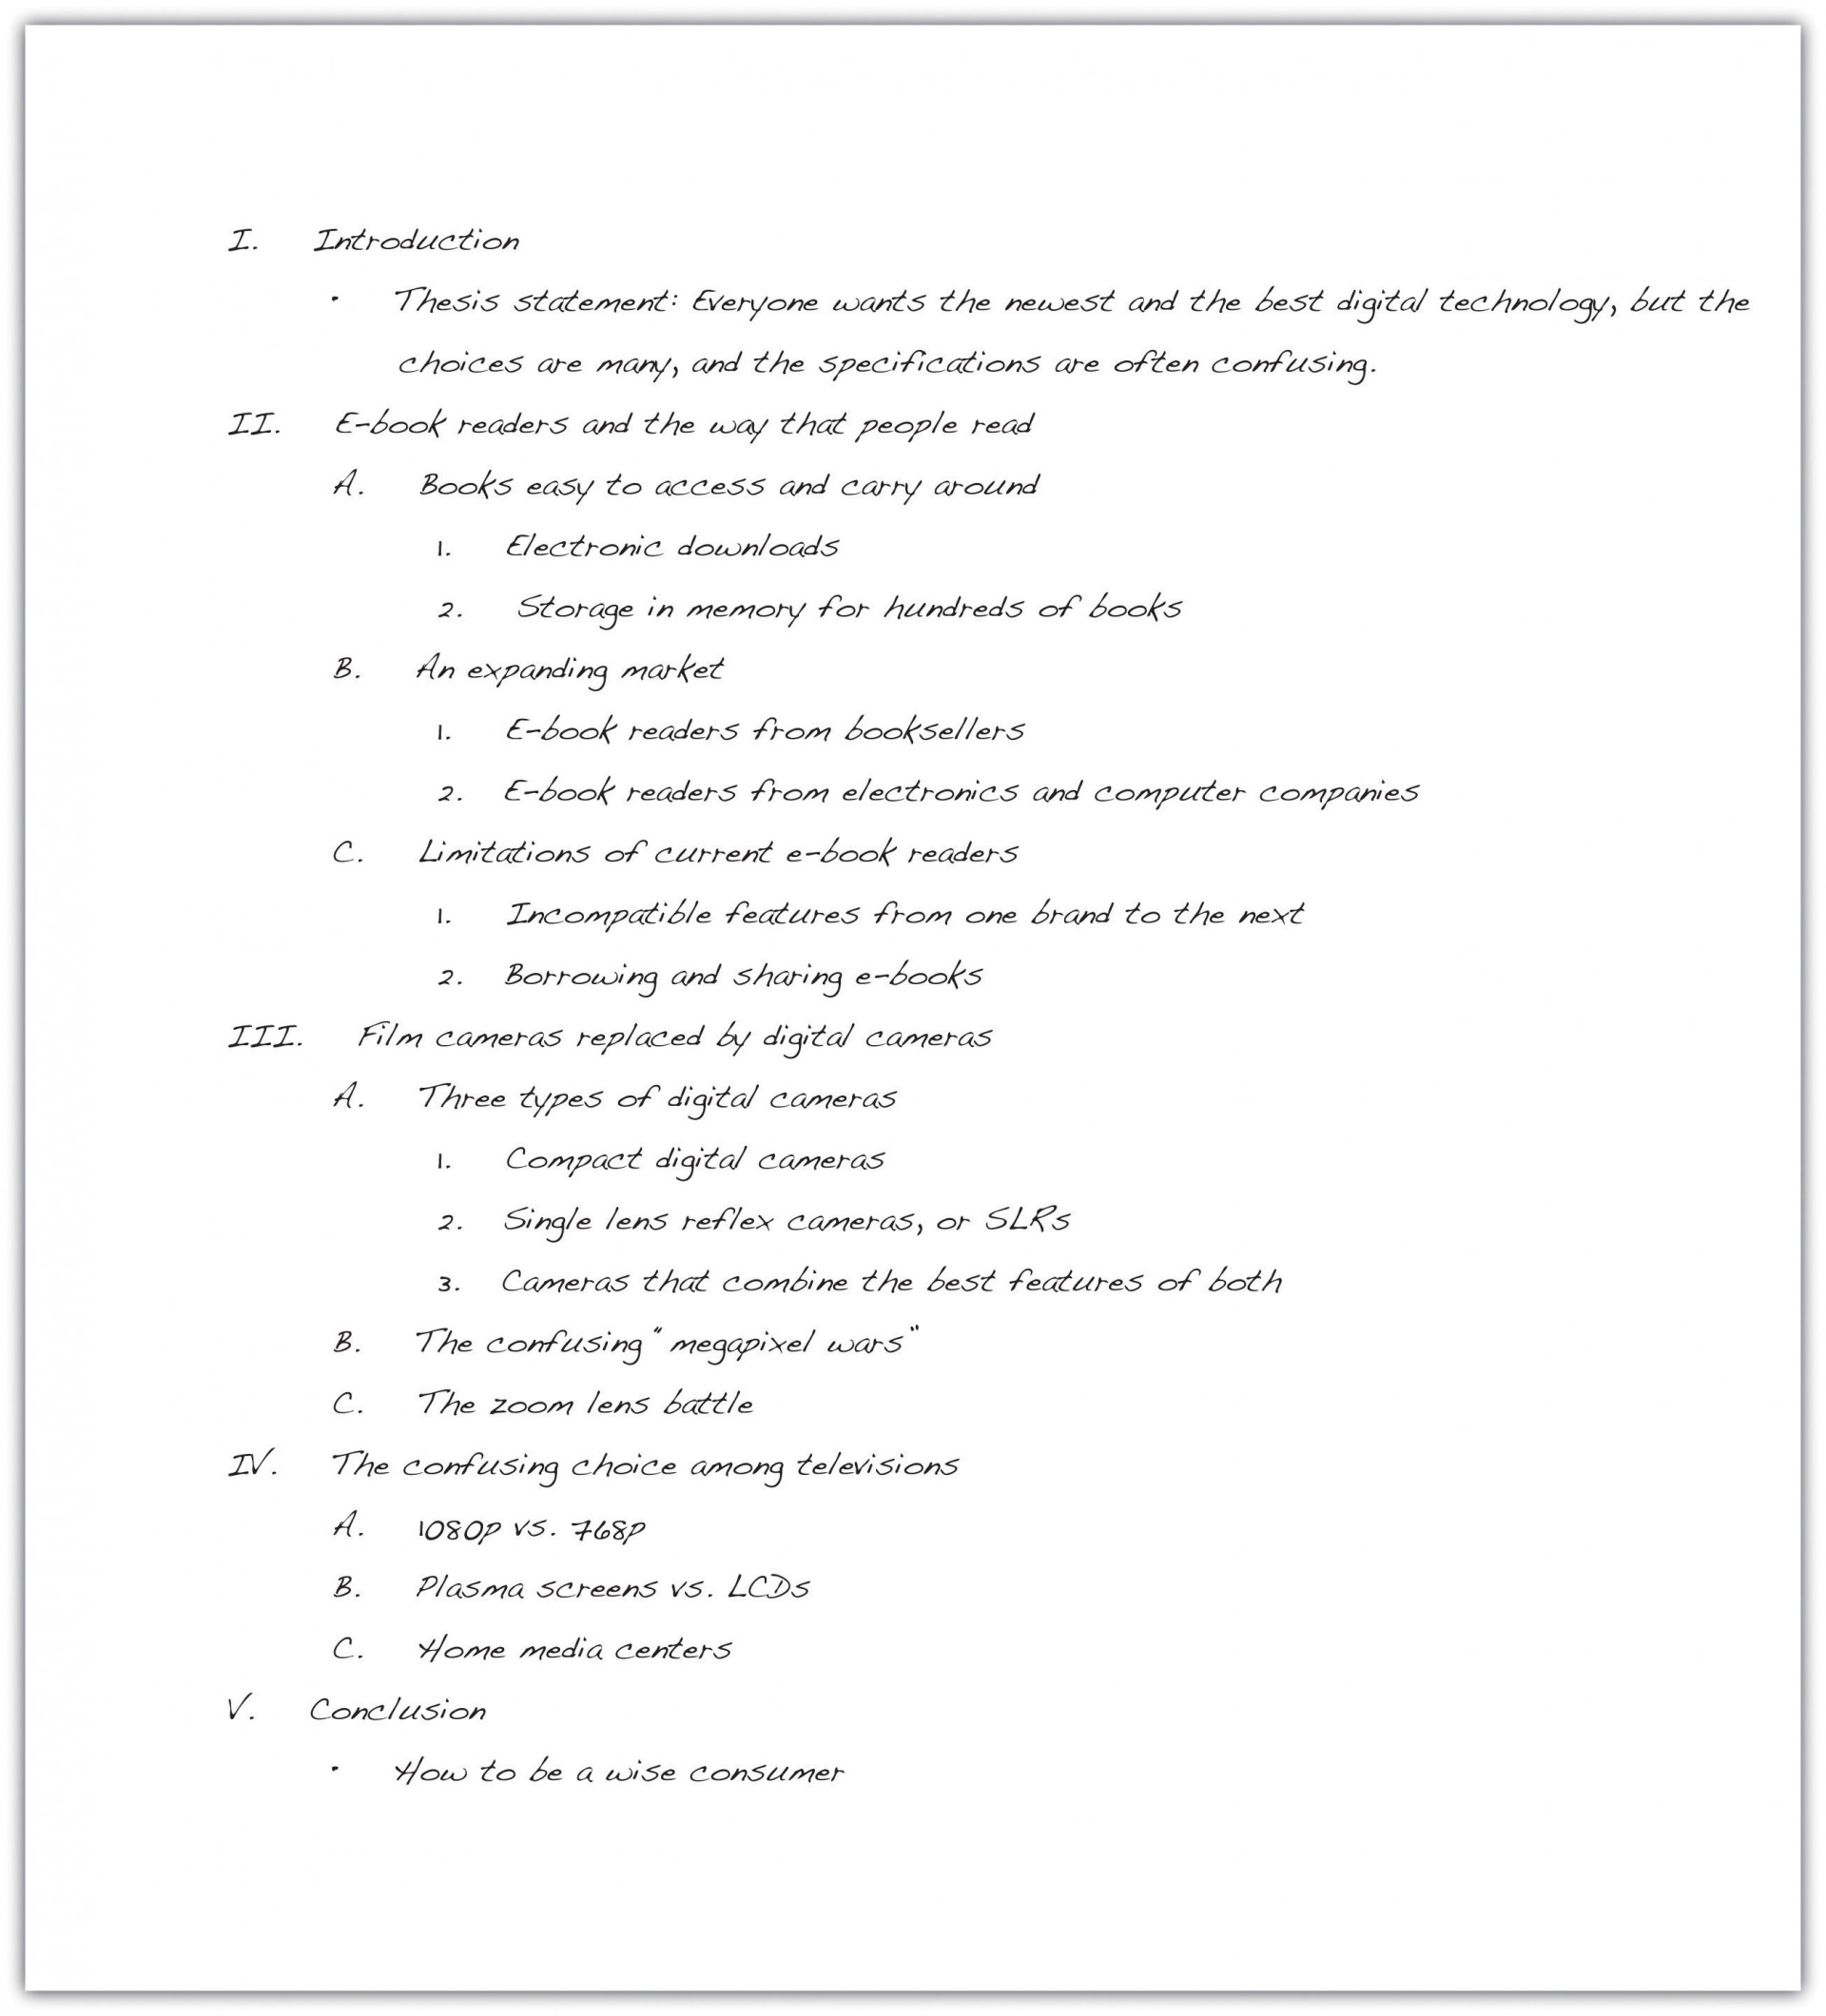 007 What Is An Outline For Essay Example Singular Informal 1920